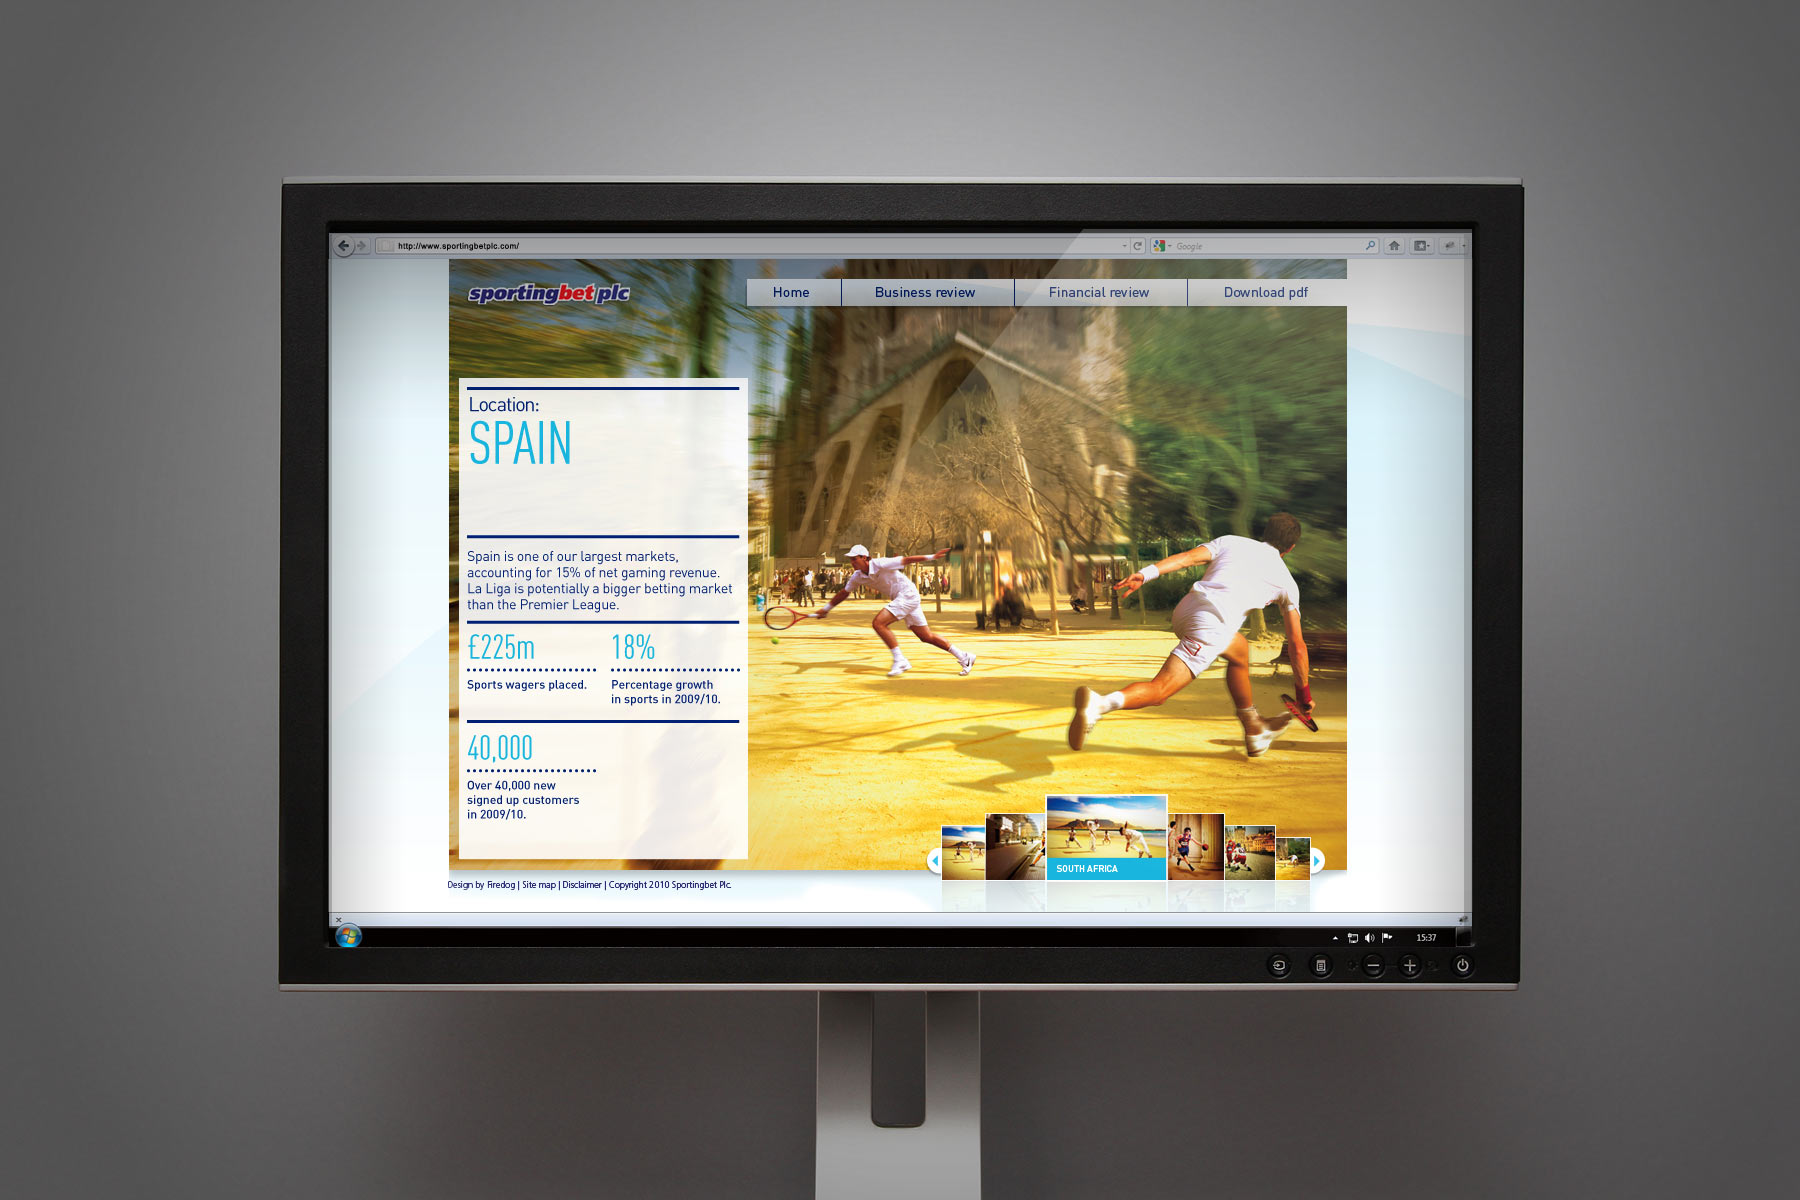 The fullpage imagery integrated nicely into the digital format. A quick spot of competitive tennis in front of the Sagrada Familia.